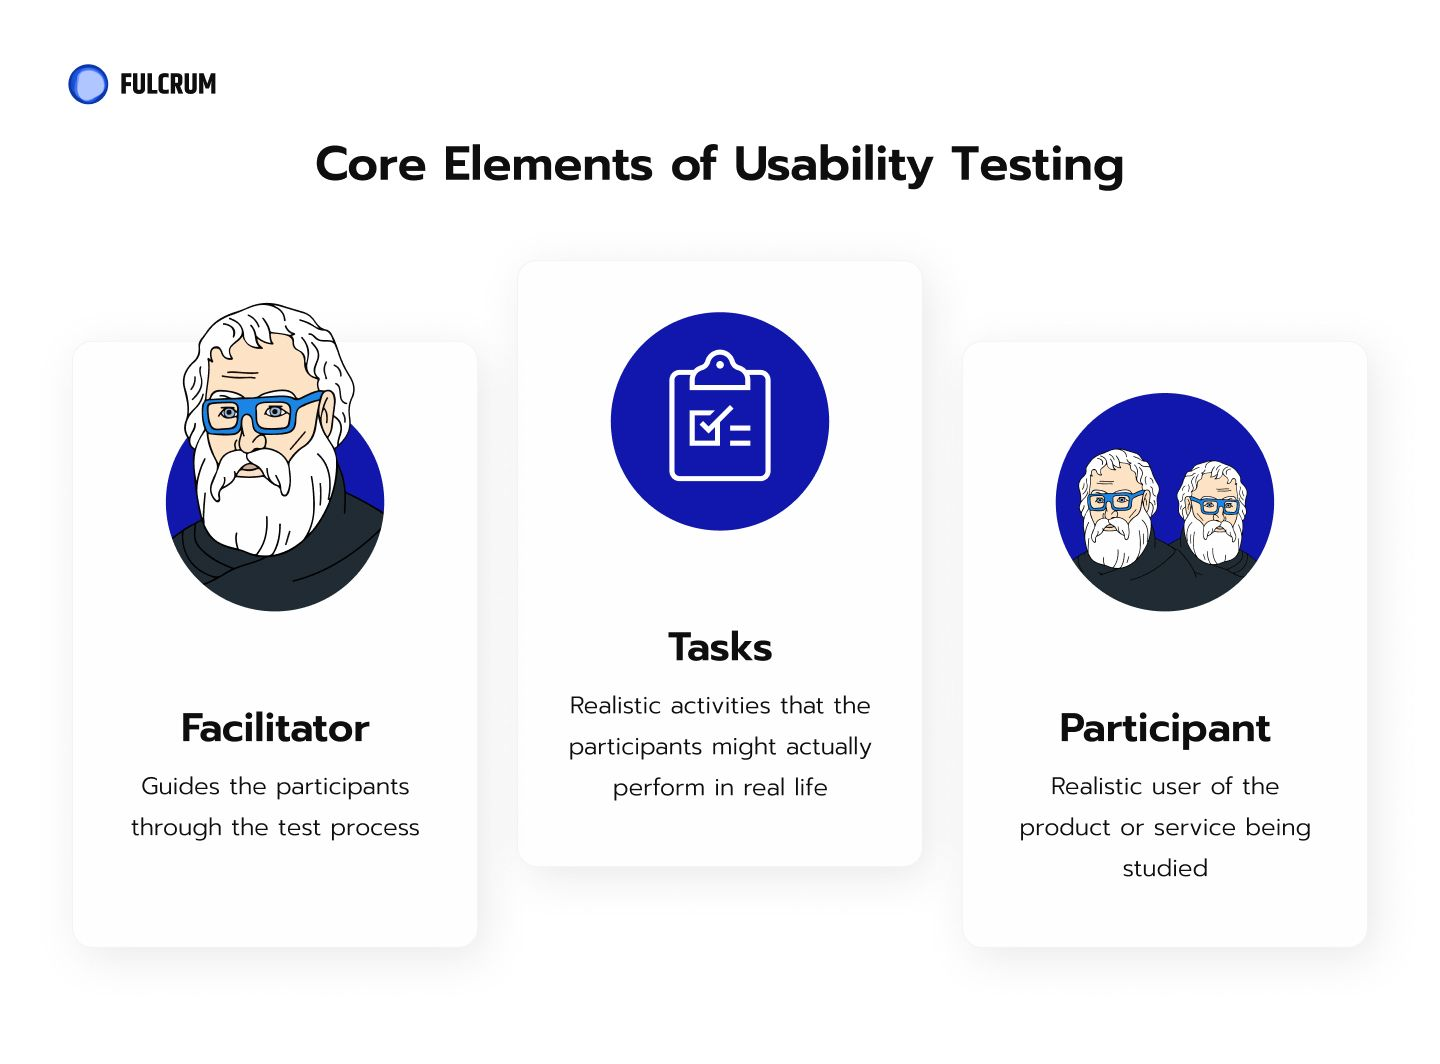 core elements of usability testing.